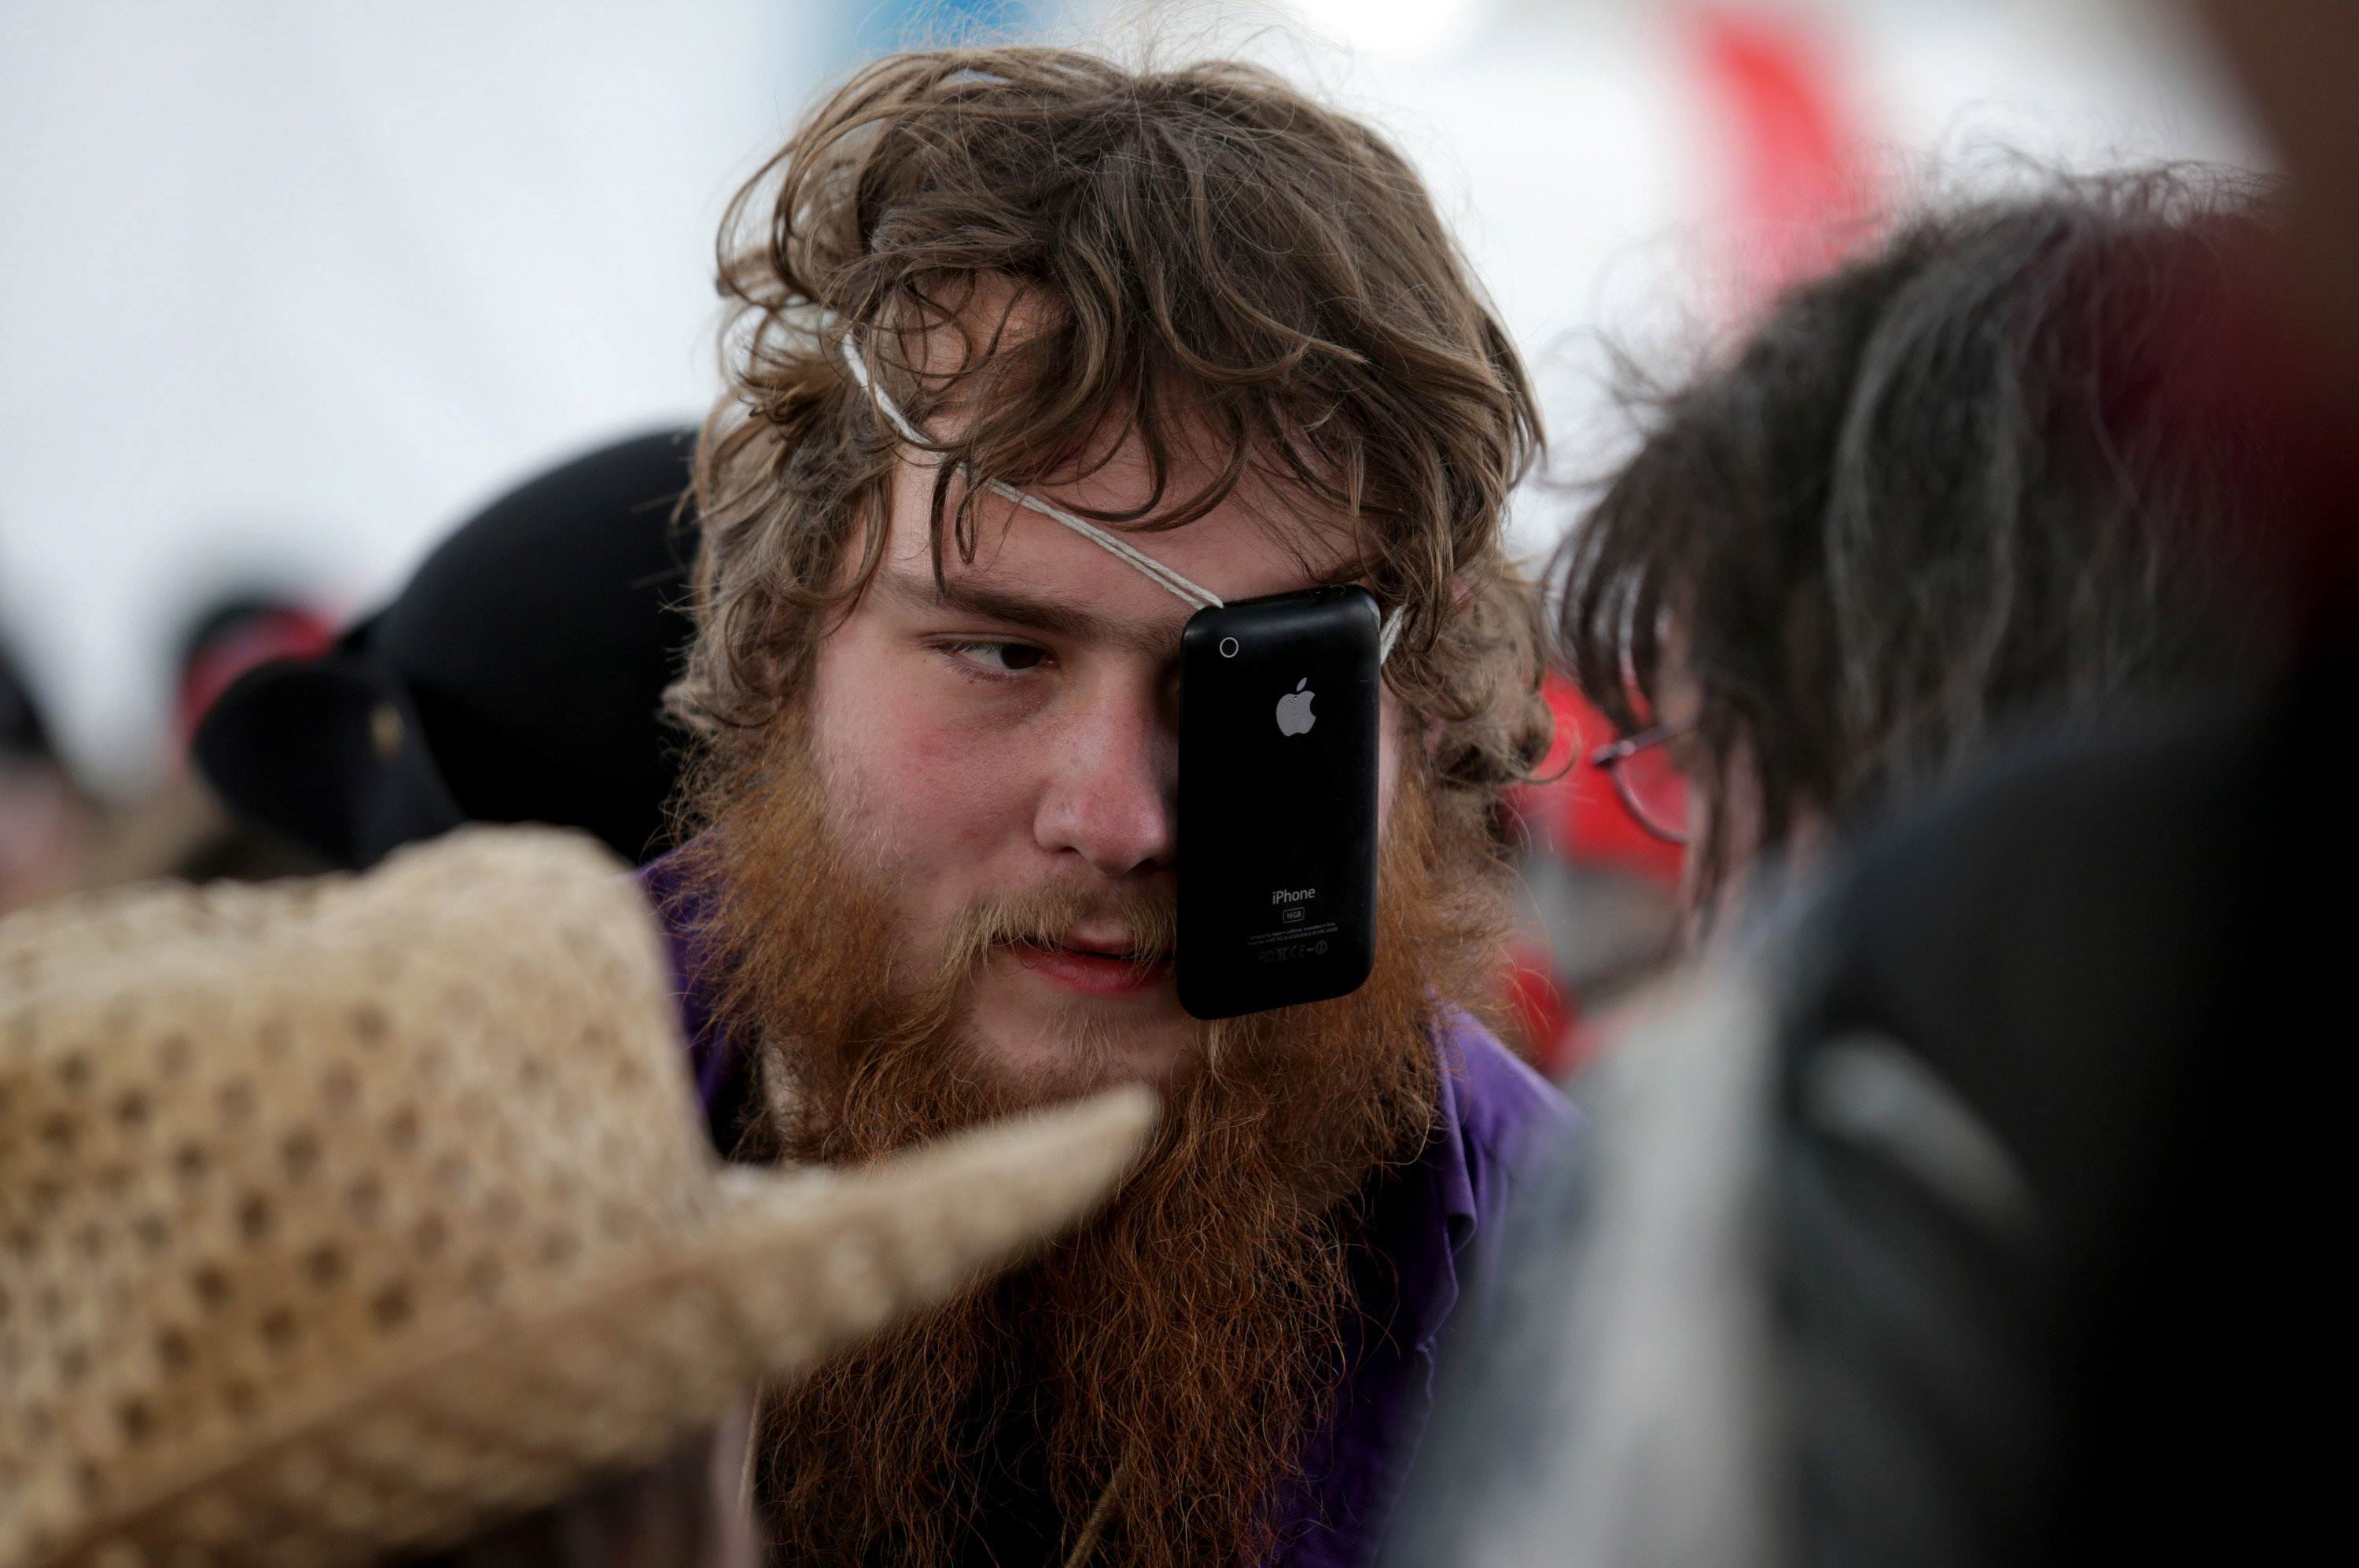 A man uses a iPhone as a eye patch